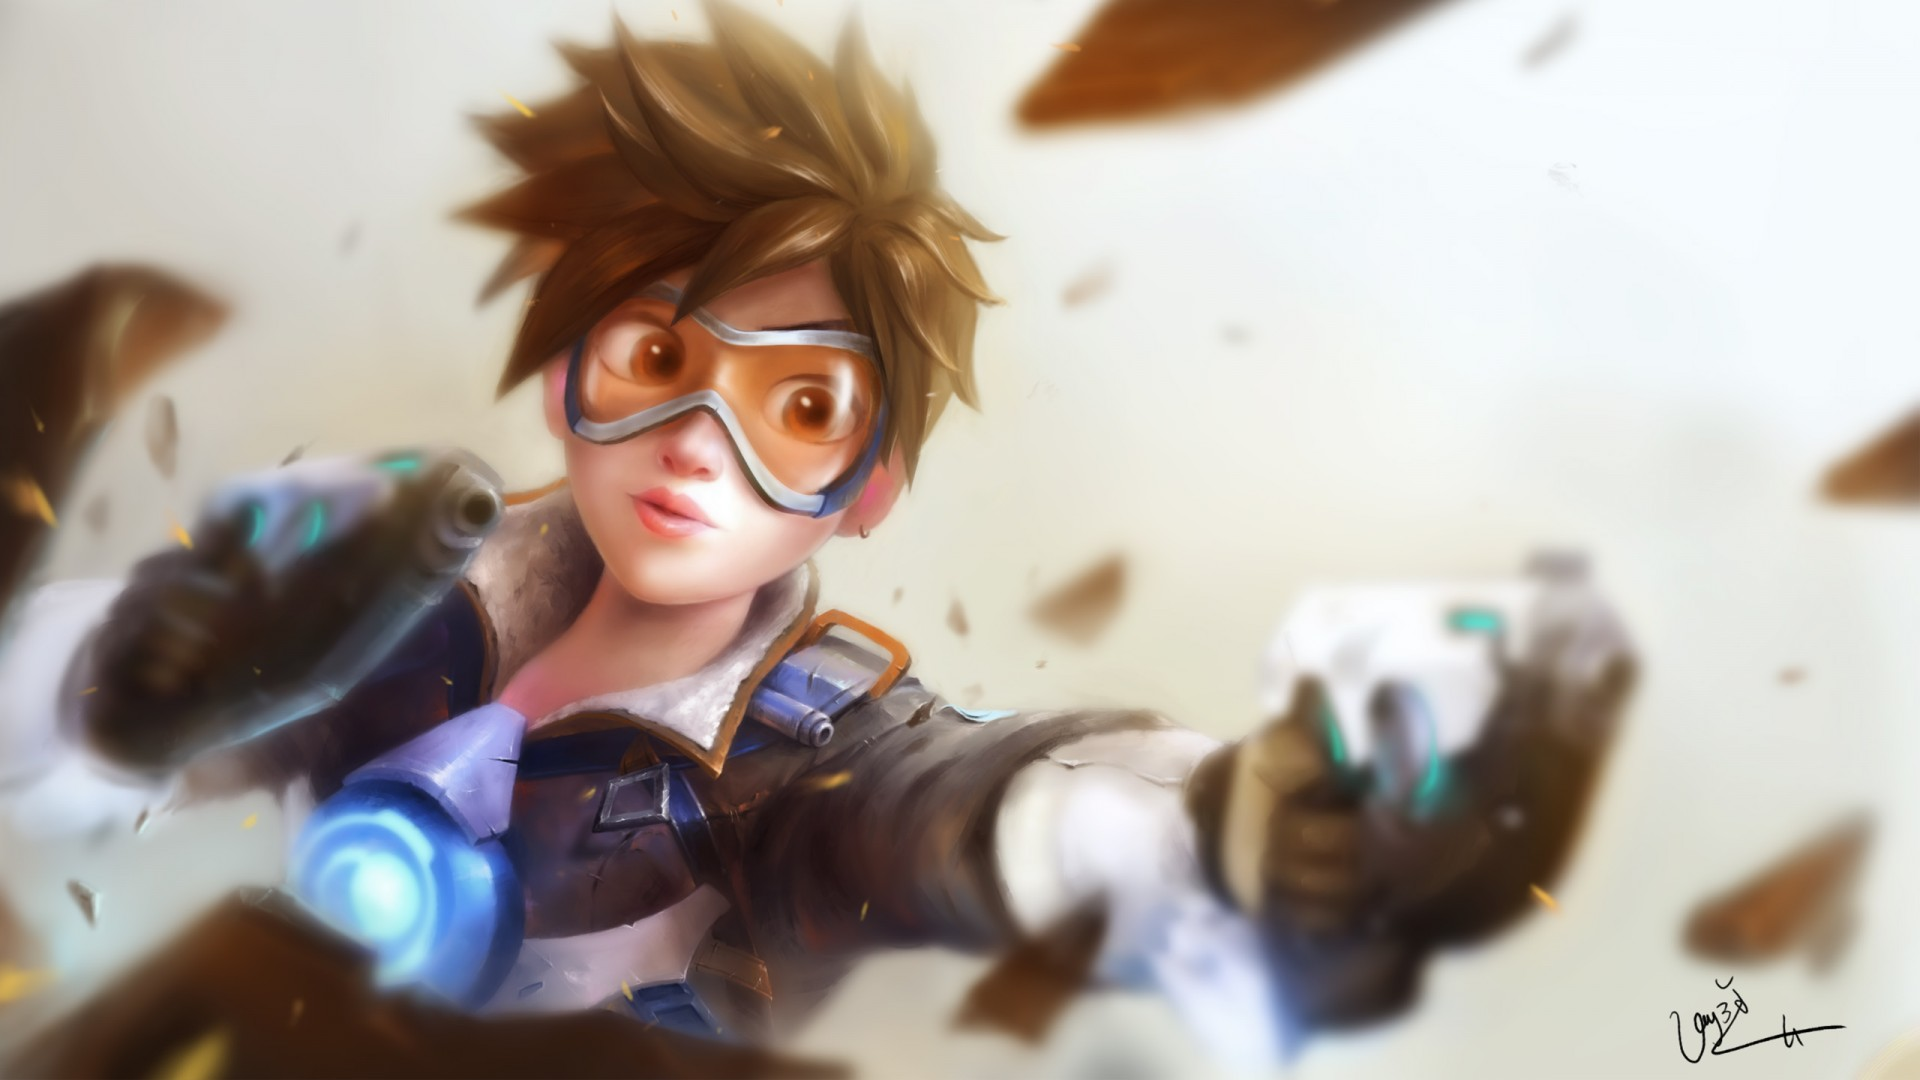 superior skill,artistry,prowess,overwatch,graphics,artistic production,tracer,nontextual matter,punt,games,artwork,art,fine art,artistic creation,overwtach